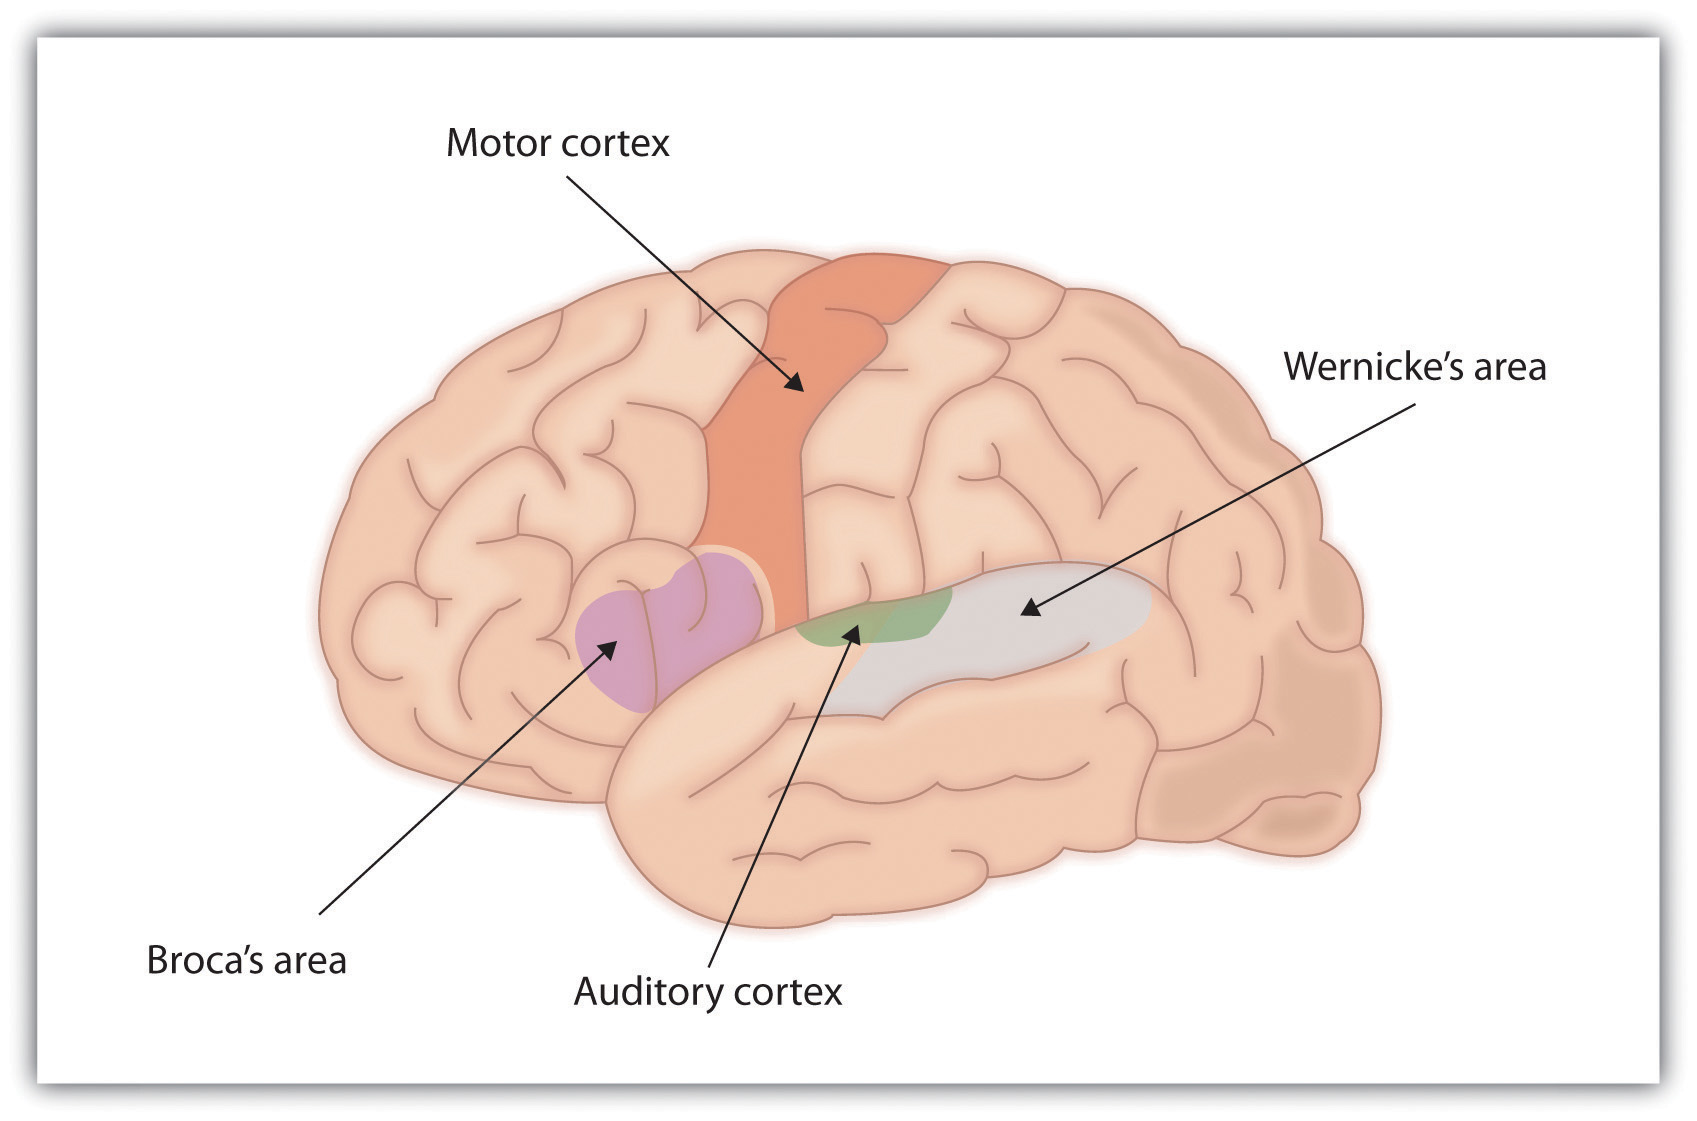 Drawing of Brain Showing Broca's and Wernicke's Areas